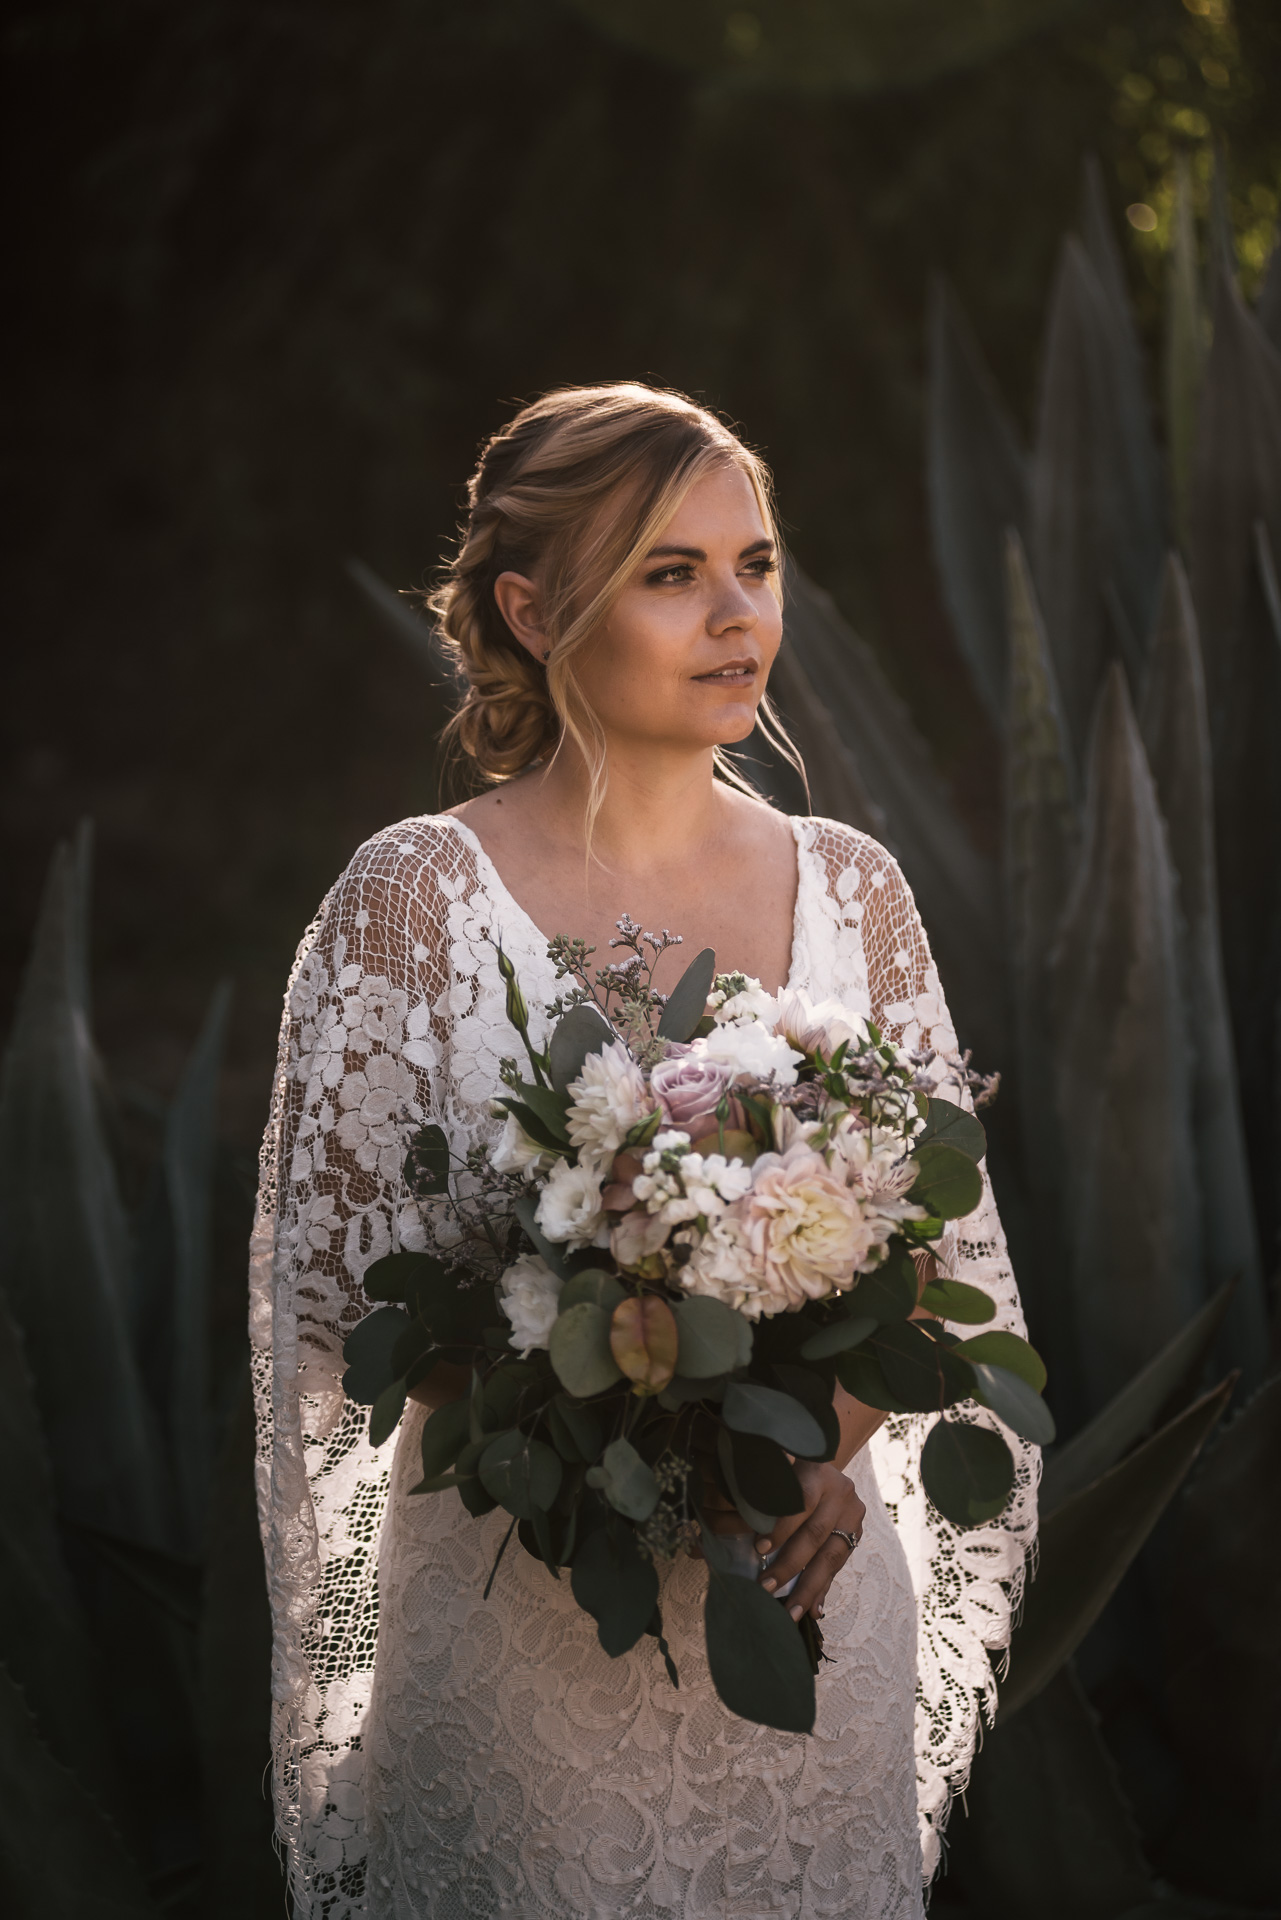 Beautiful bridal portait in front of agave plants captured by photographer during romantic wedding at the historic Leo Carrillo Ranch in Carlsbad California